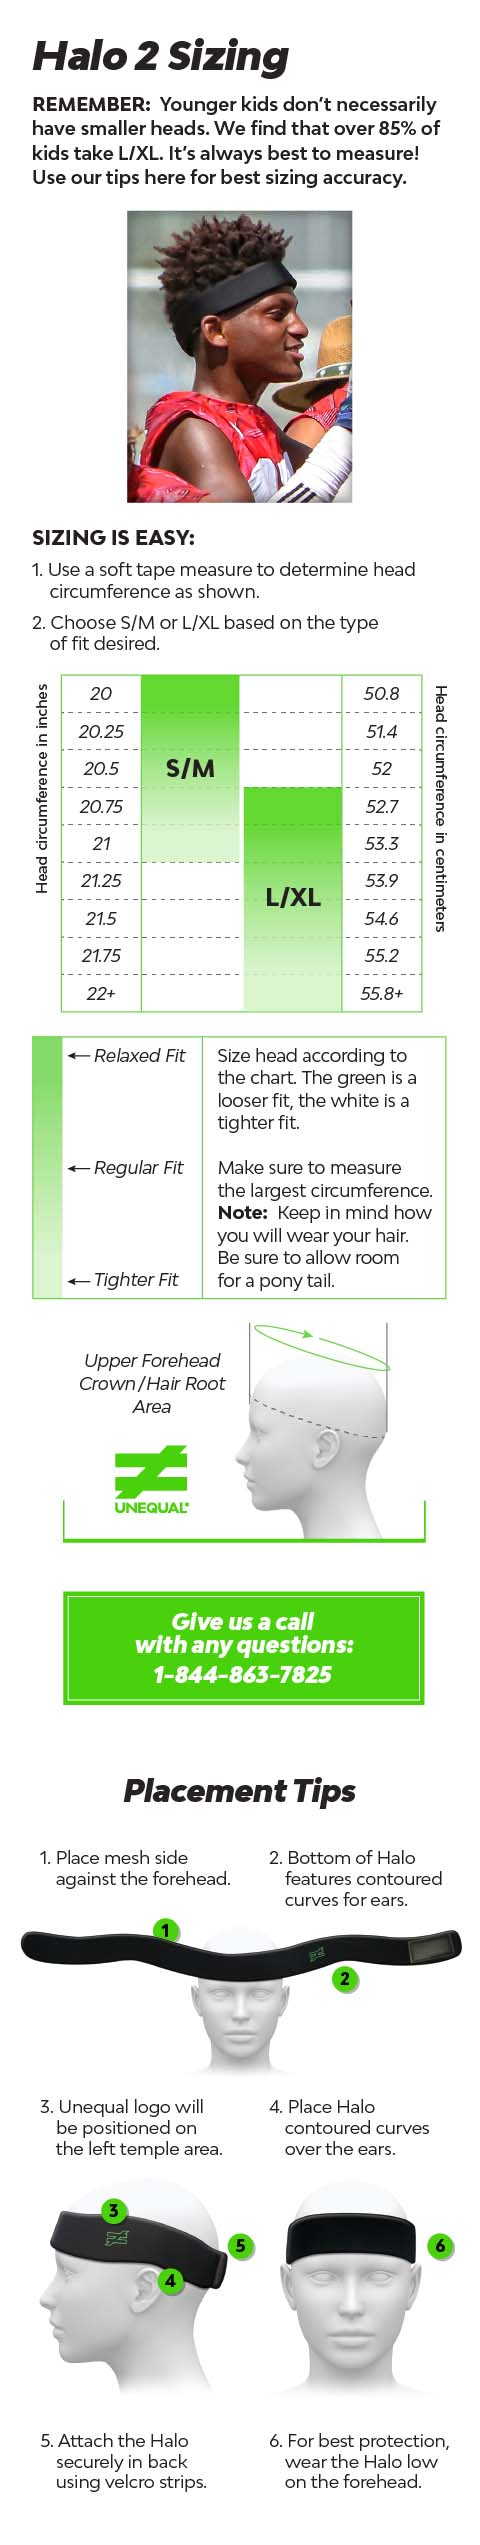 unequal-halo-2-concussion-impact-protection-sizing